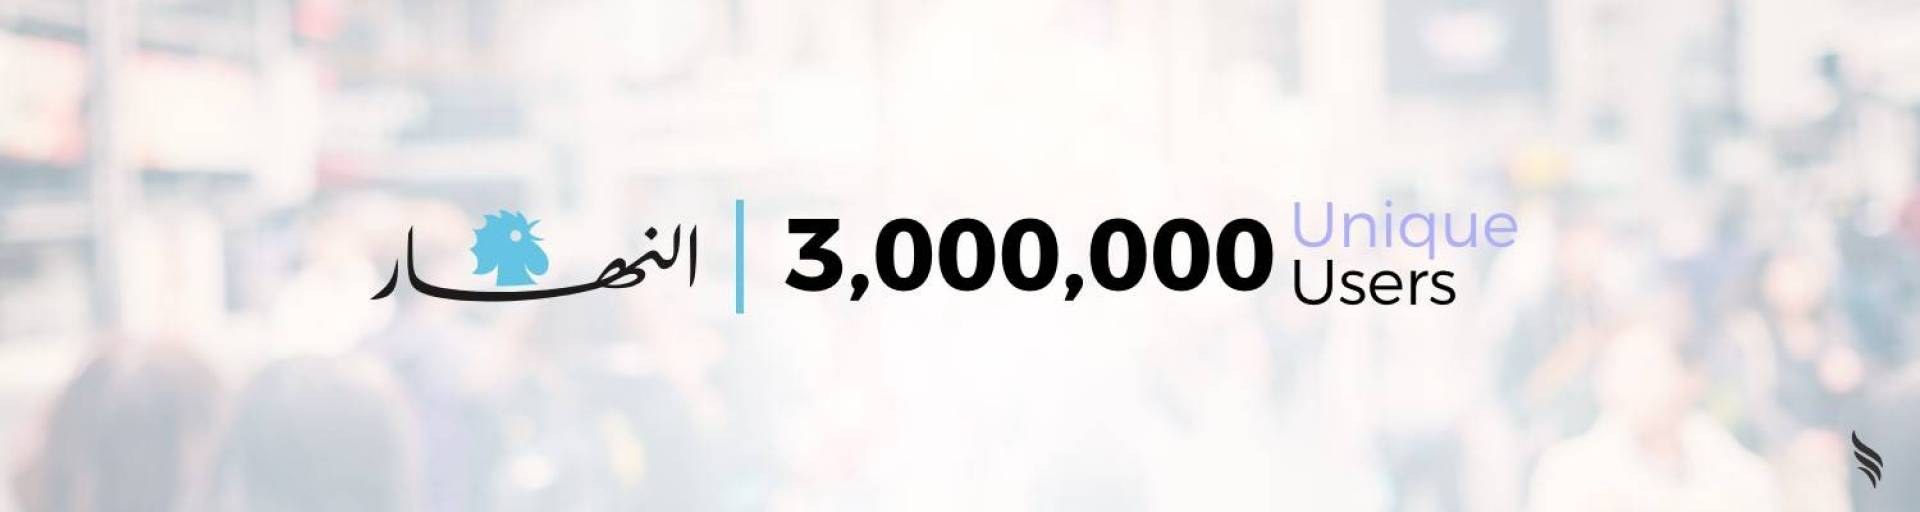 WhiteBeard CMS enables An-Nahar to increase their unique users by 6 times in less than 2 years